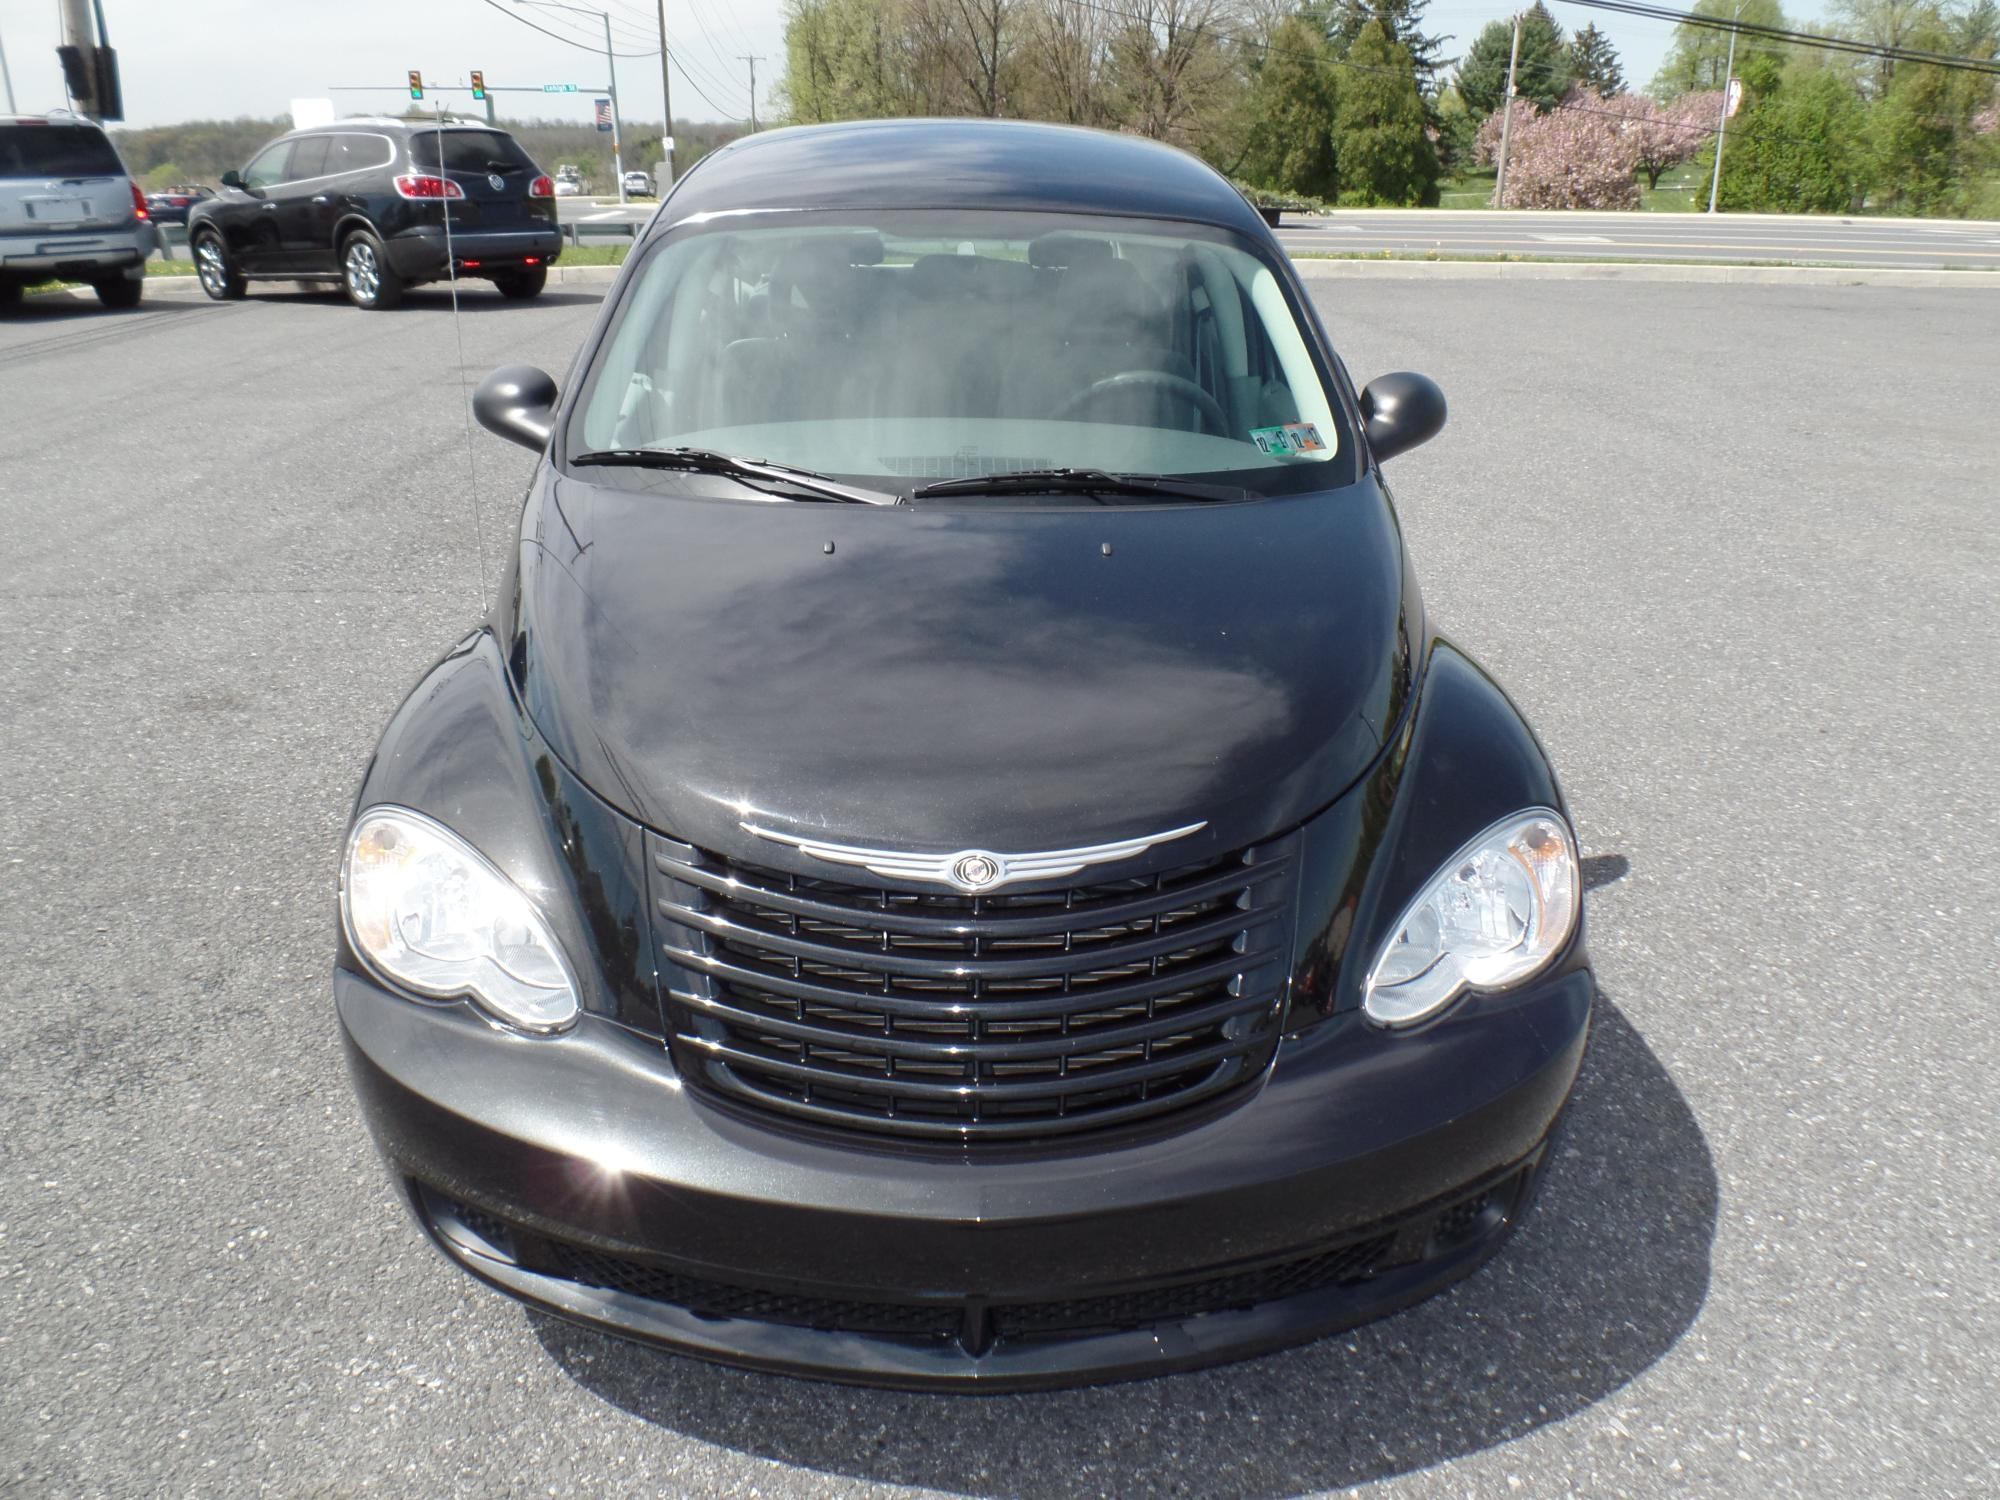 4-28-2017_2009_Chrysler_PT_Cruiser_540698__7_.JPG